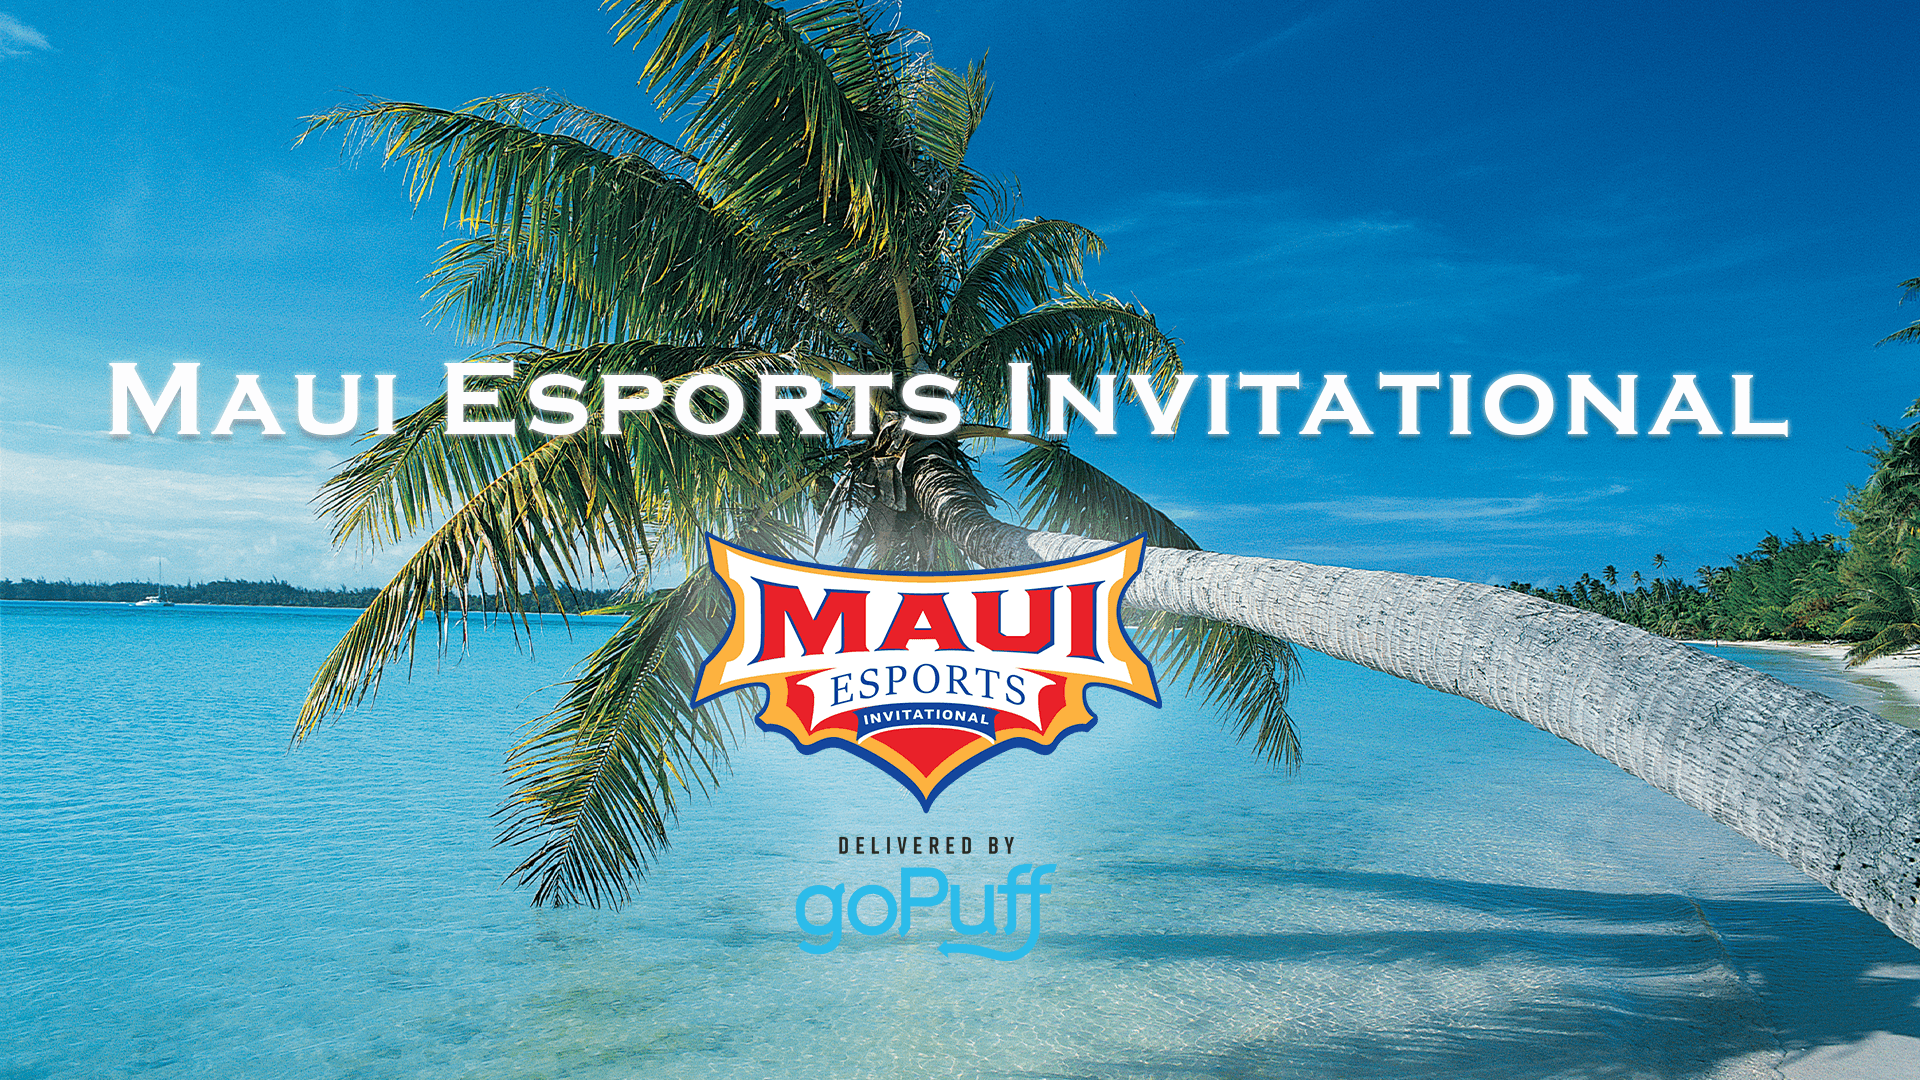 Maui Invitational Announces Inaugural Maui Esports Invitational featuring Rocket League and delivered by goPuff